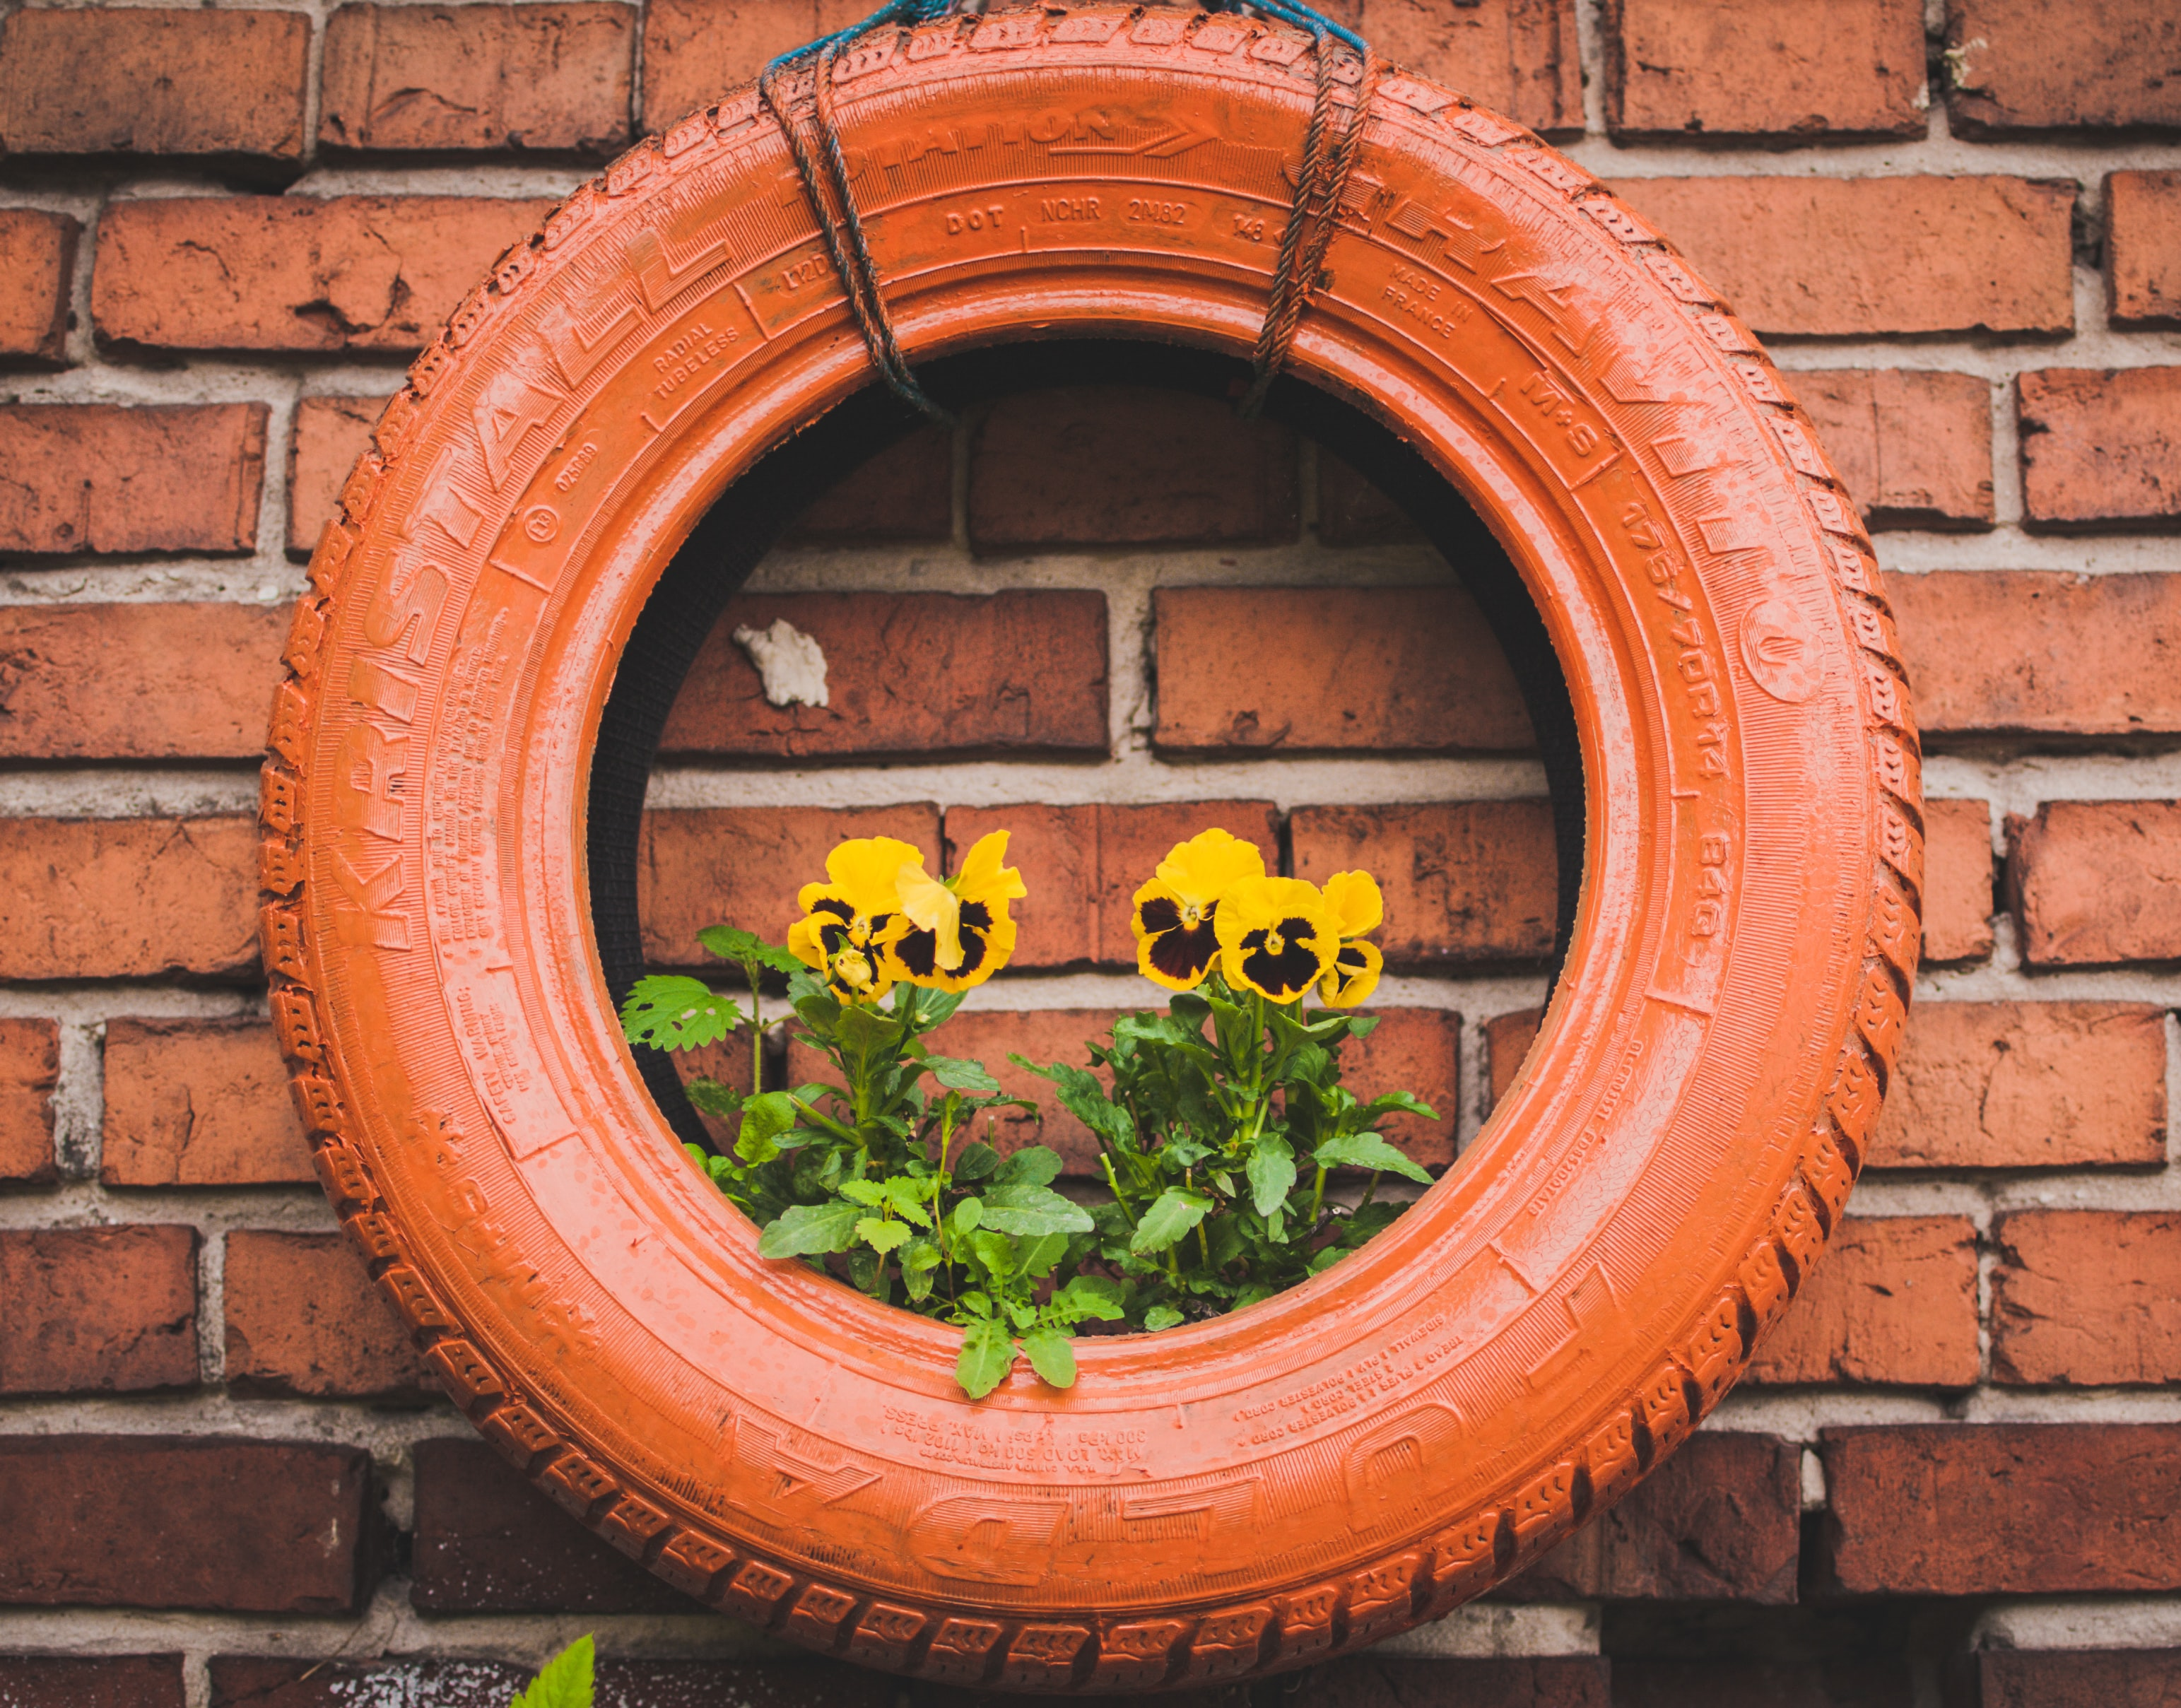 Yellow pansies growing in a red tire hanging from a wall